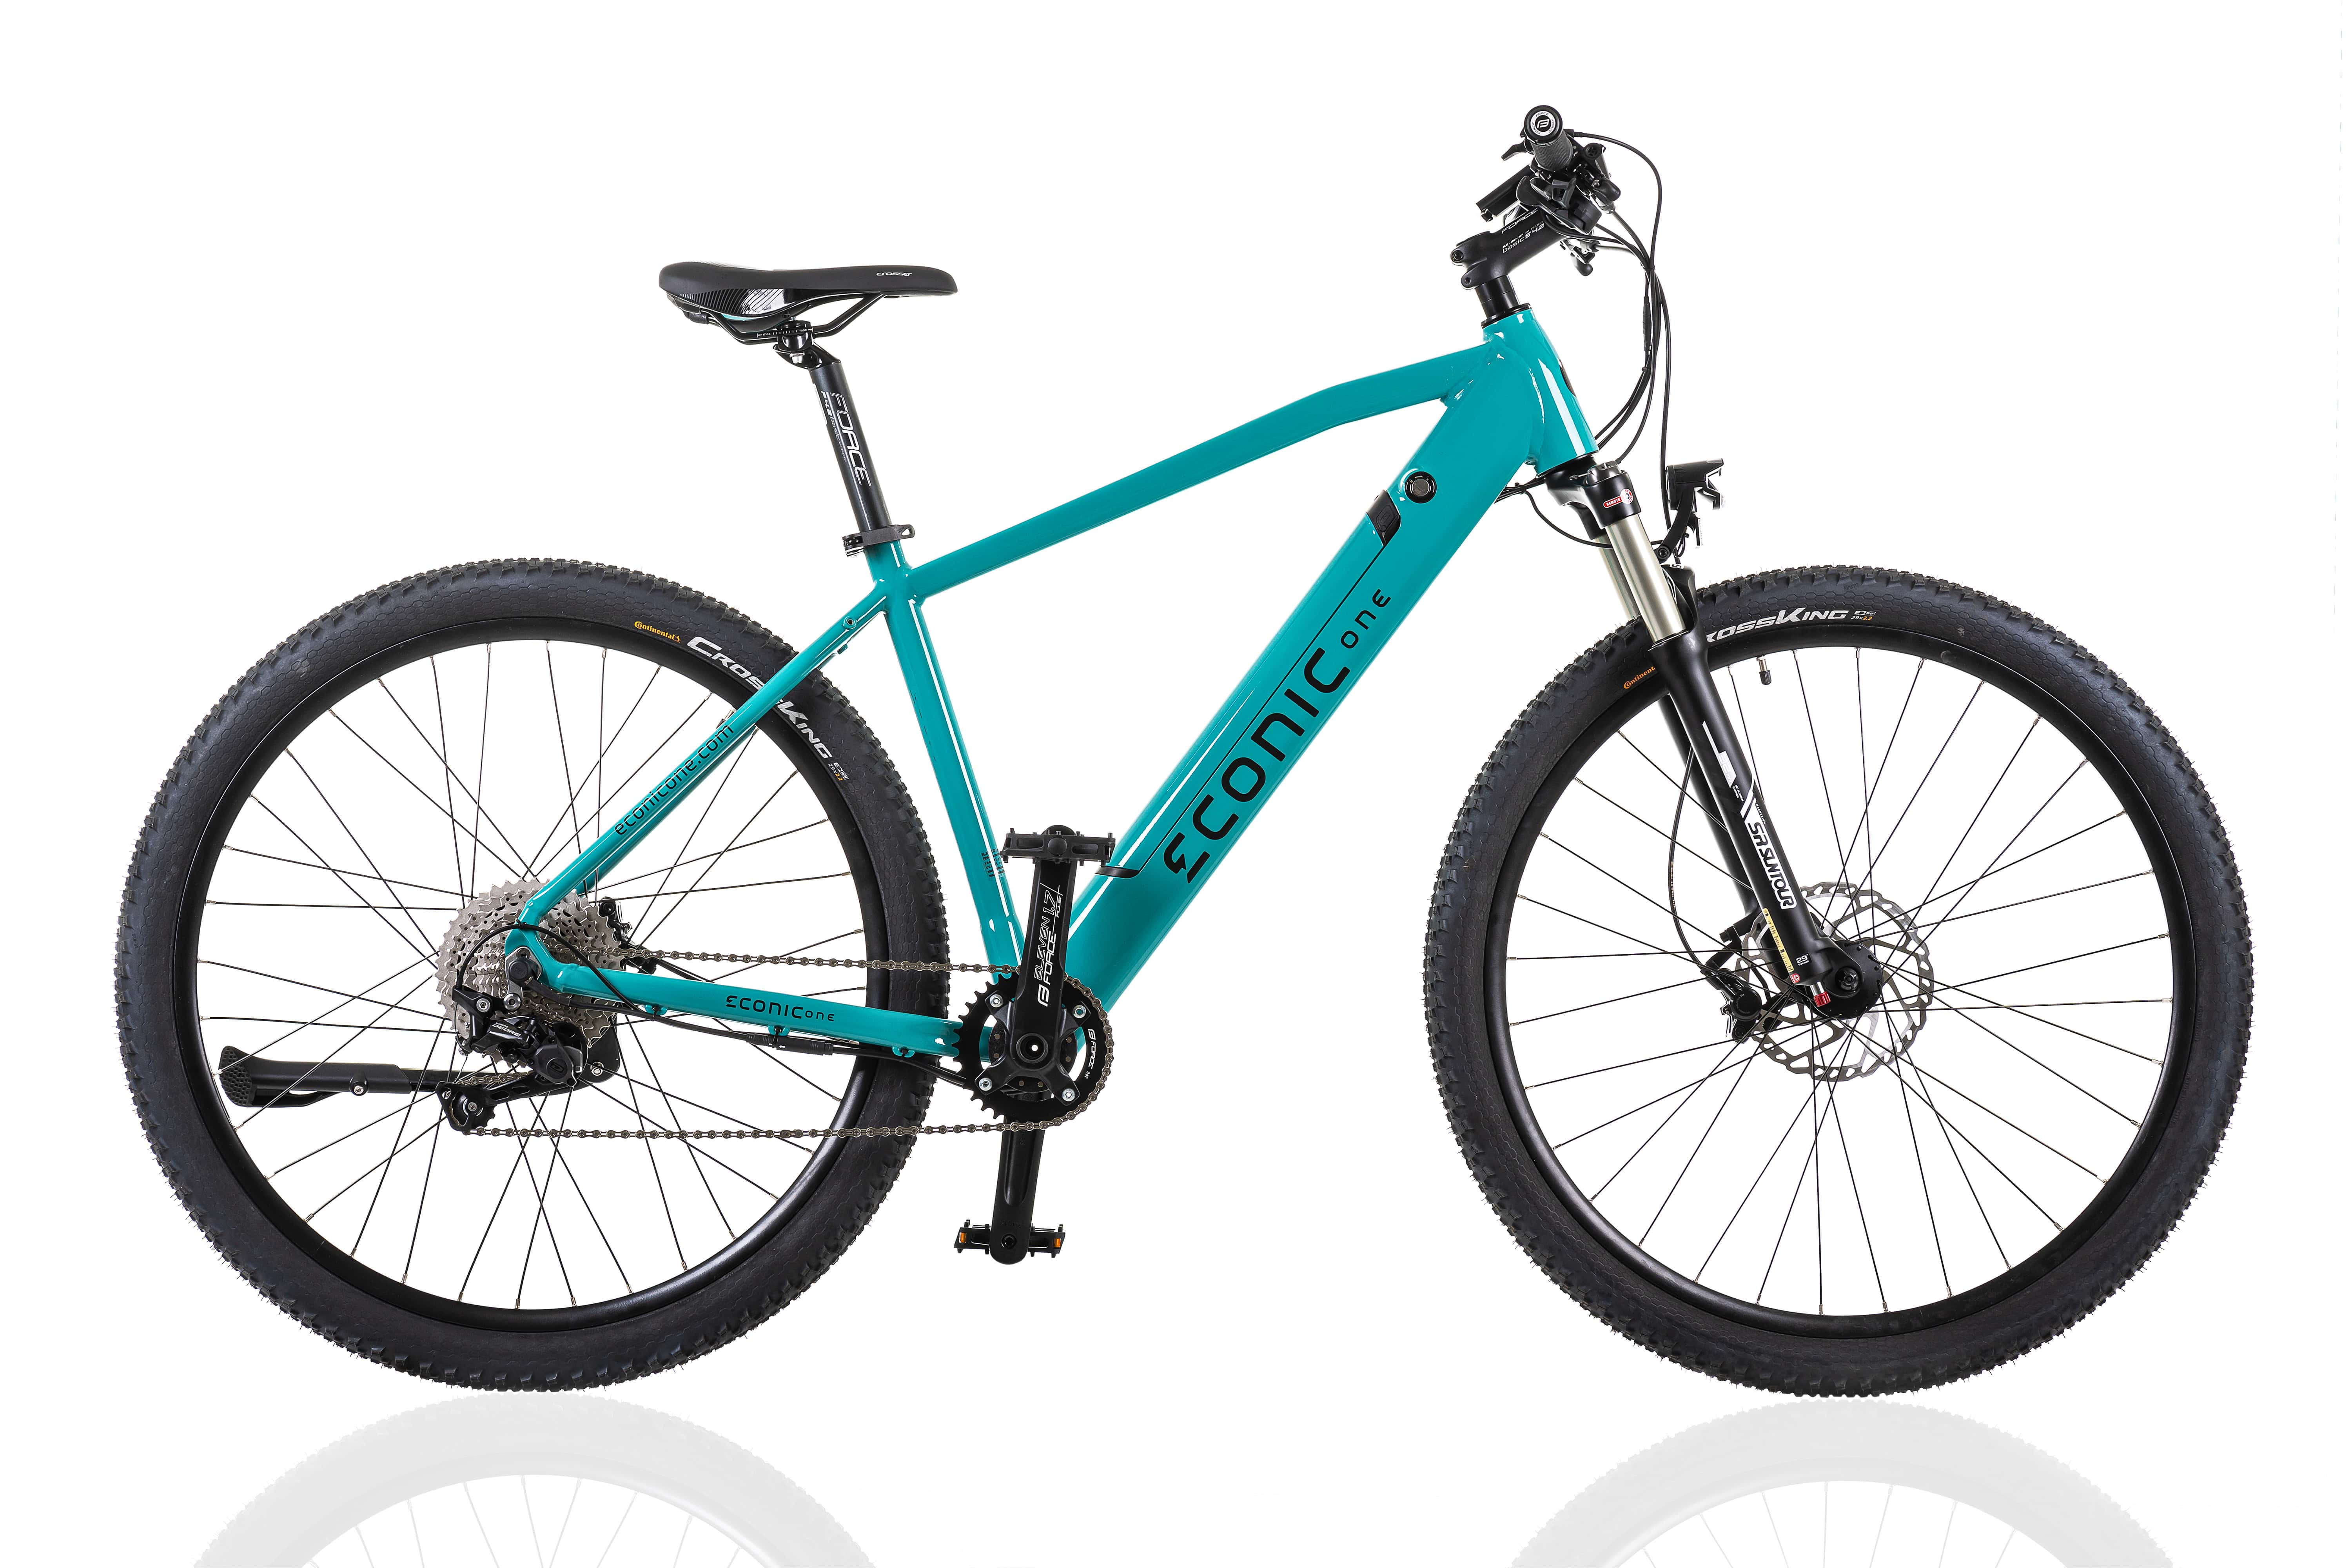 Electric Hybrid Bike Econic One Cross-country L 48cm Turquoise